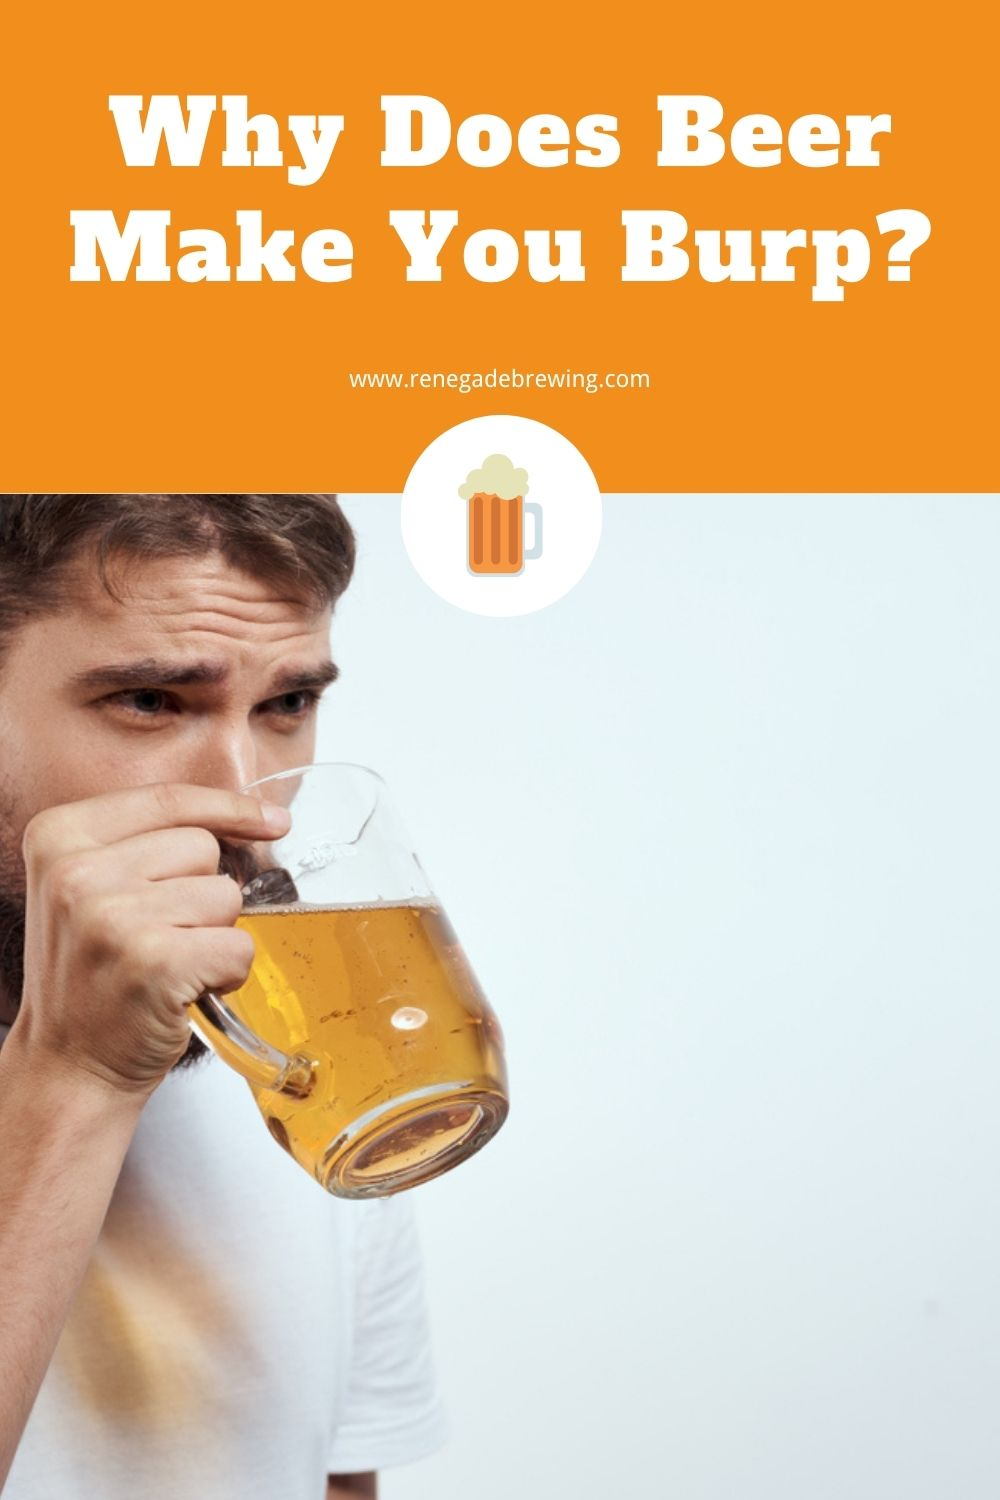 Why Does Beer Make You Burp (5 Tips to Prevent) 2